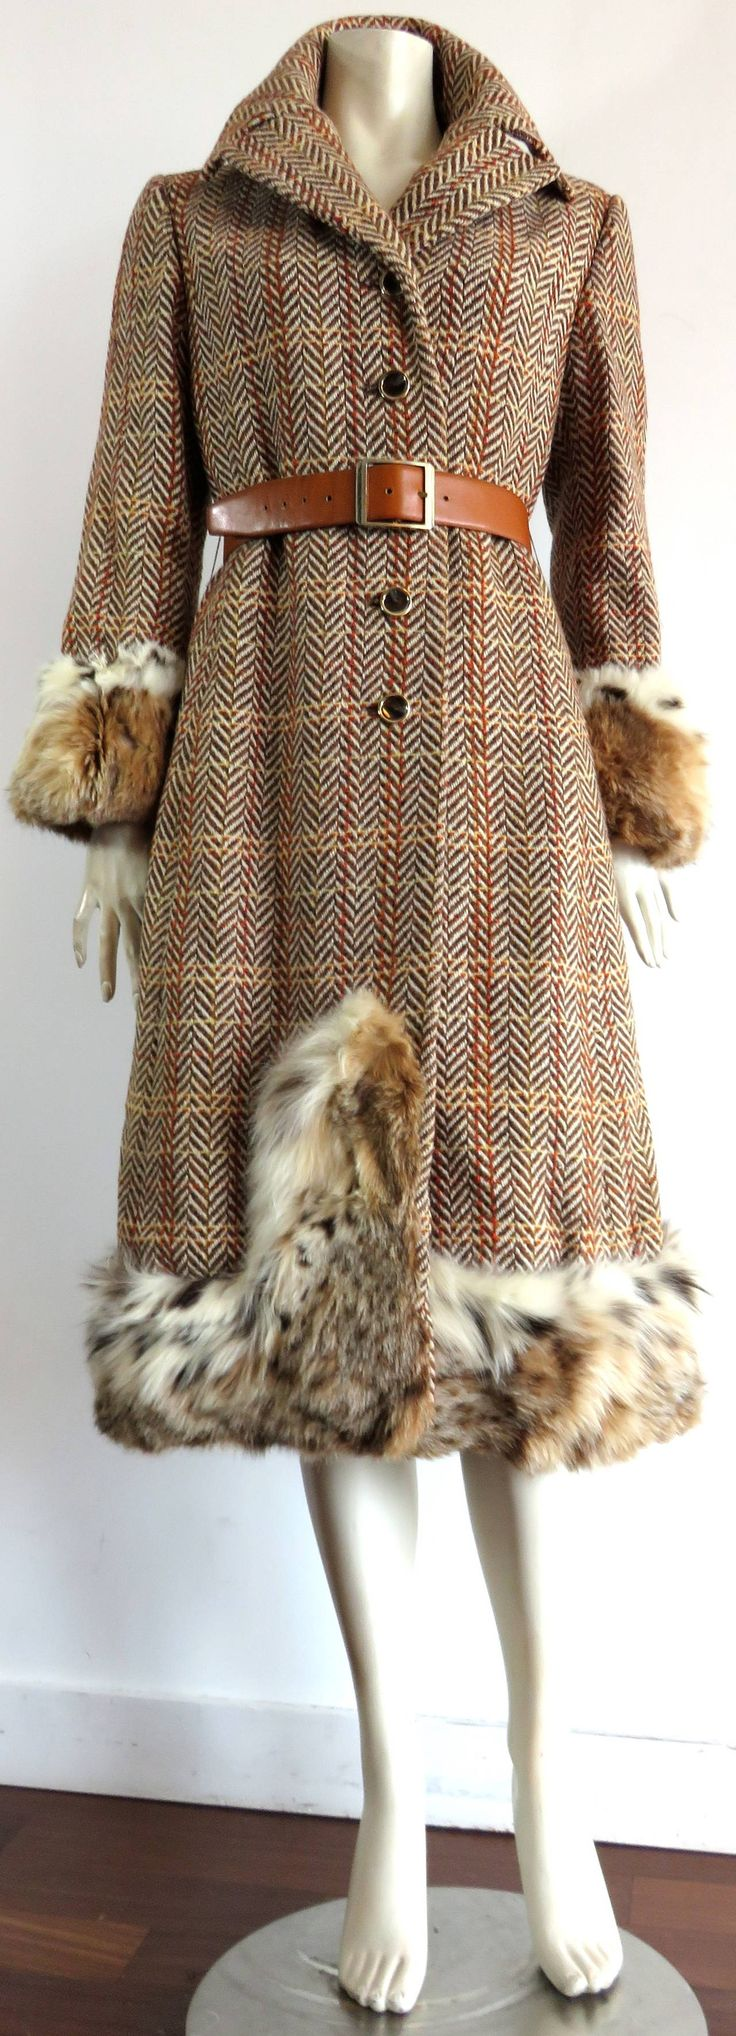 1970 CHRISTIAN DIOR NY Wool tweed & Lynx fur coat